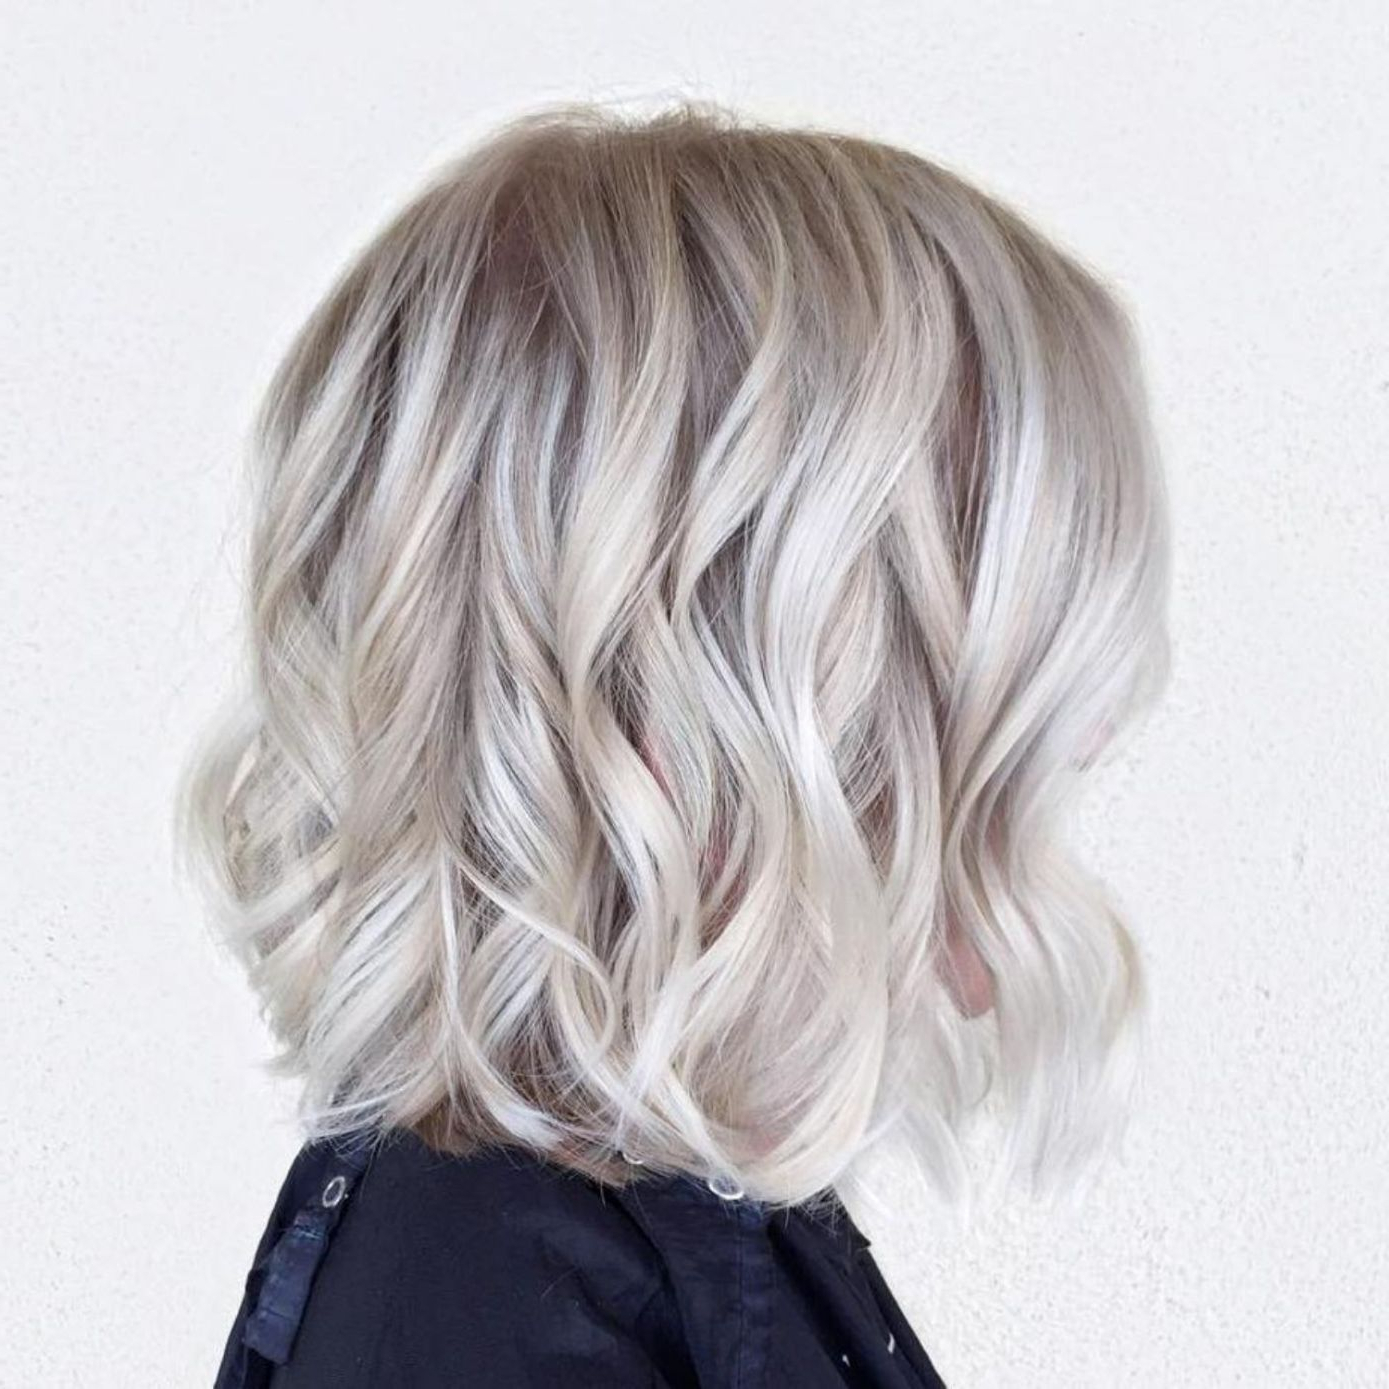 70 Winning Looks With Bob Haircuts For Fine Hair In 2018 | Hair With Regard To White Blonde Curly Layered Bob Hairstyles (View 14 of 20)